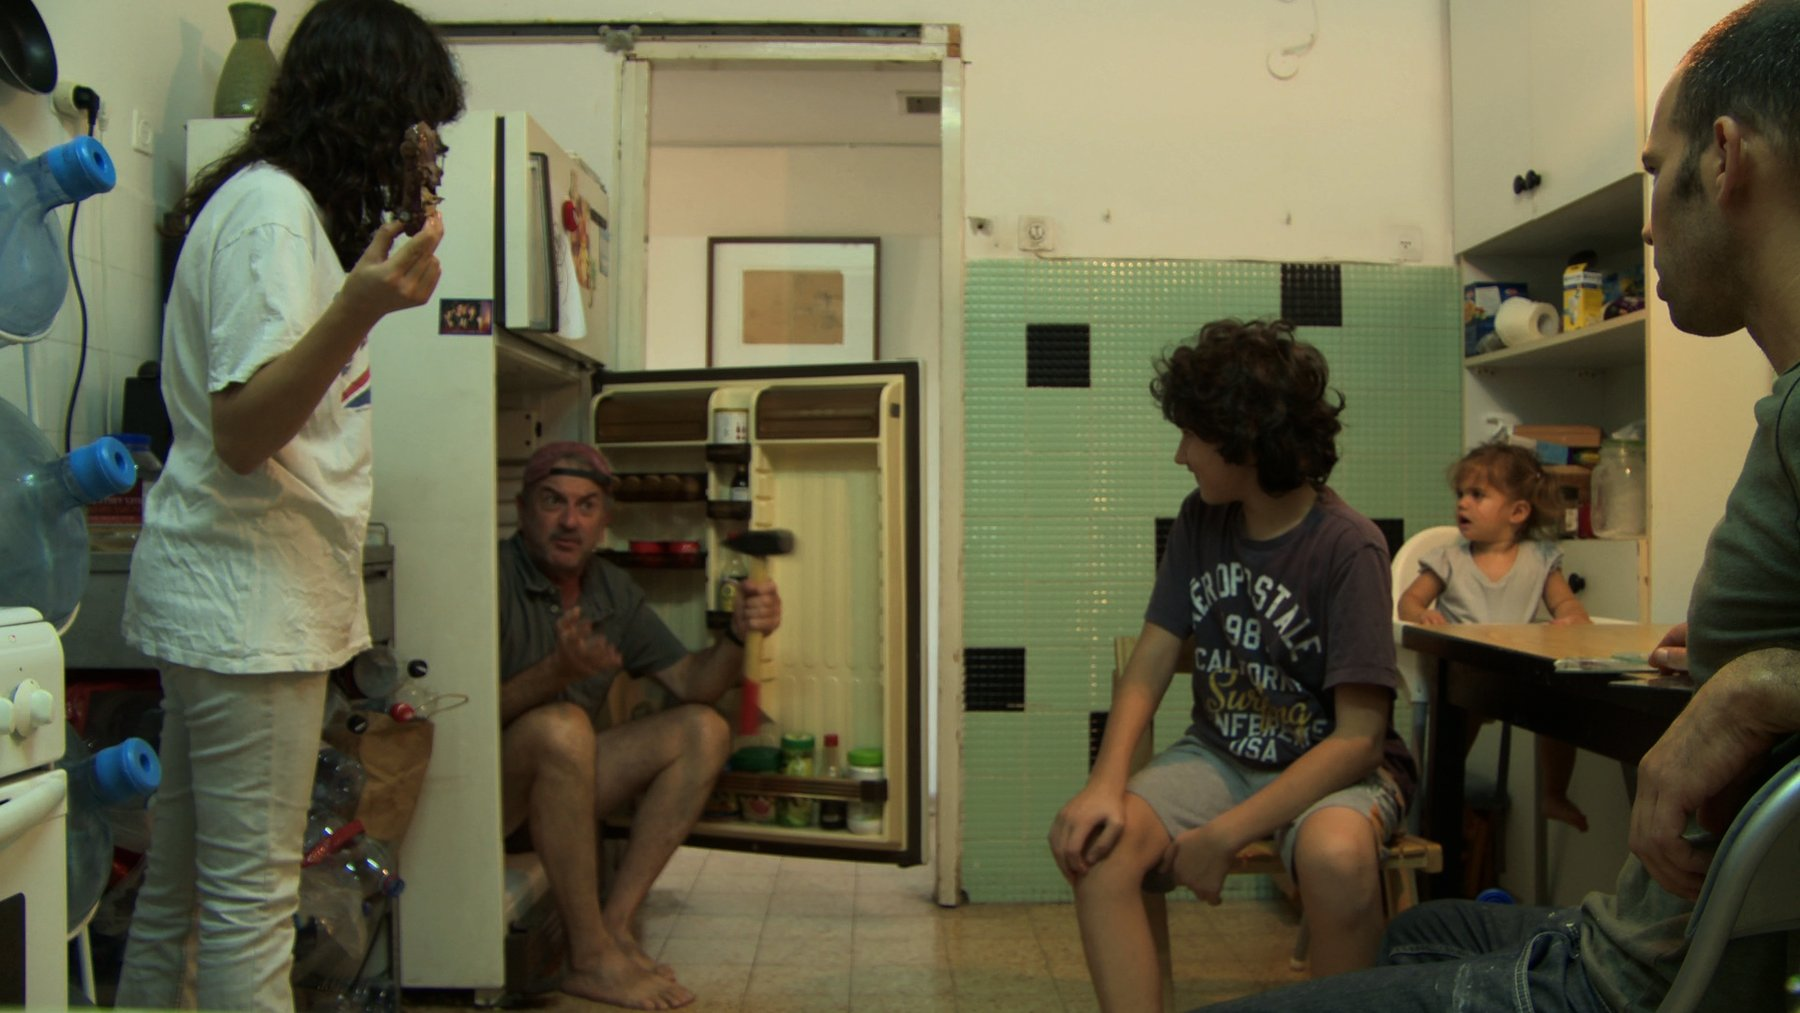 A middle-aged Caucasian man sits in an open refrigerator in a small kitchen surrounded by other adults and children, Ben Ner Soundtracks